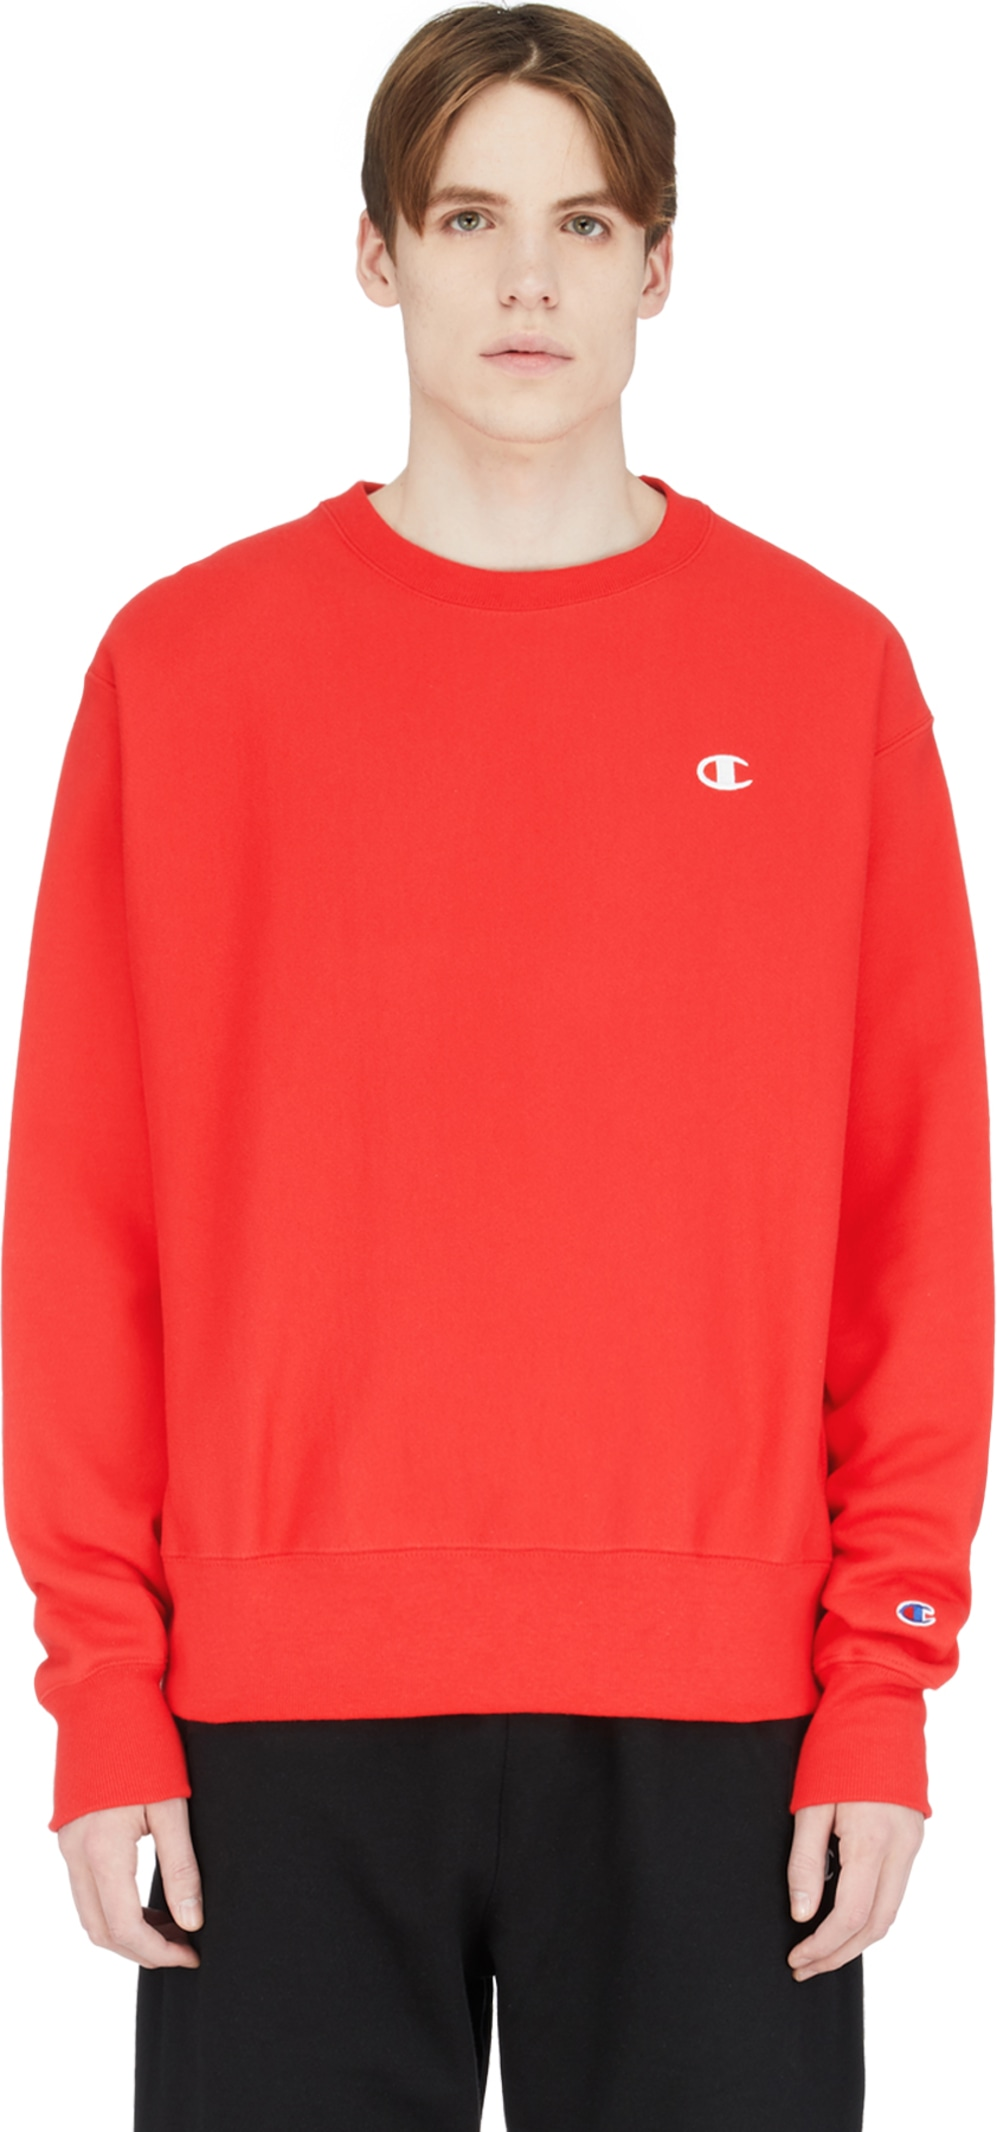 214b444f Champion: Reverse Weave Crew Neck Pullover - Team Red Scarlet ...